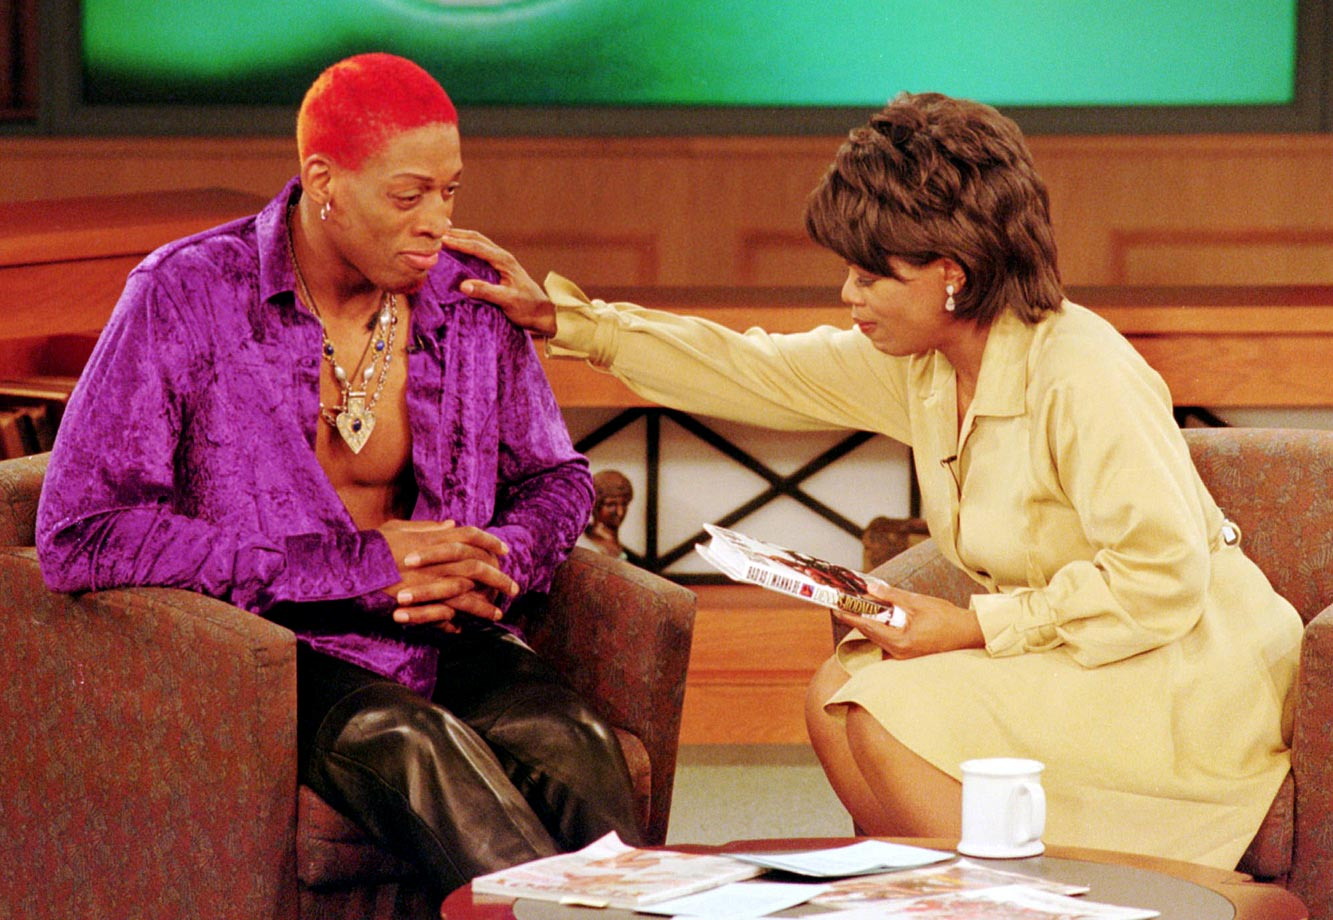 Rodman and his red hair paid Oprah a visit in 1996.